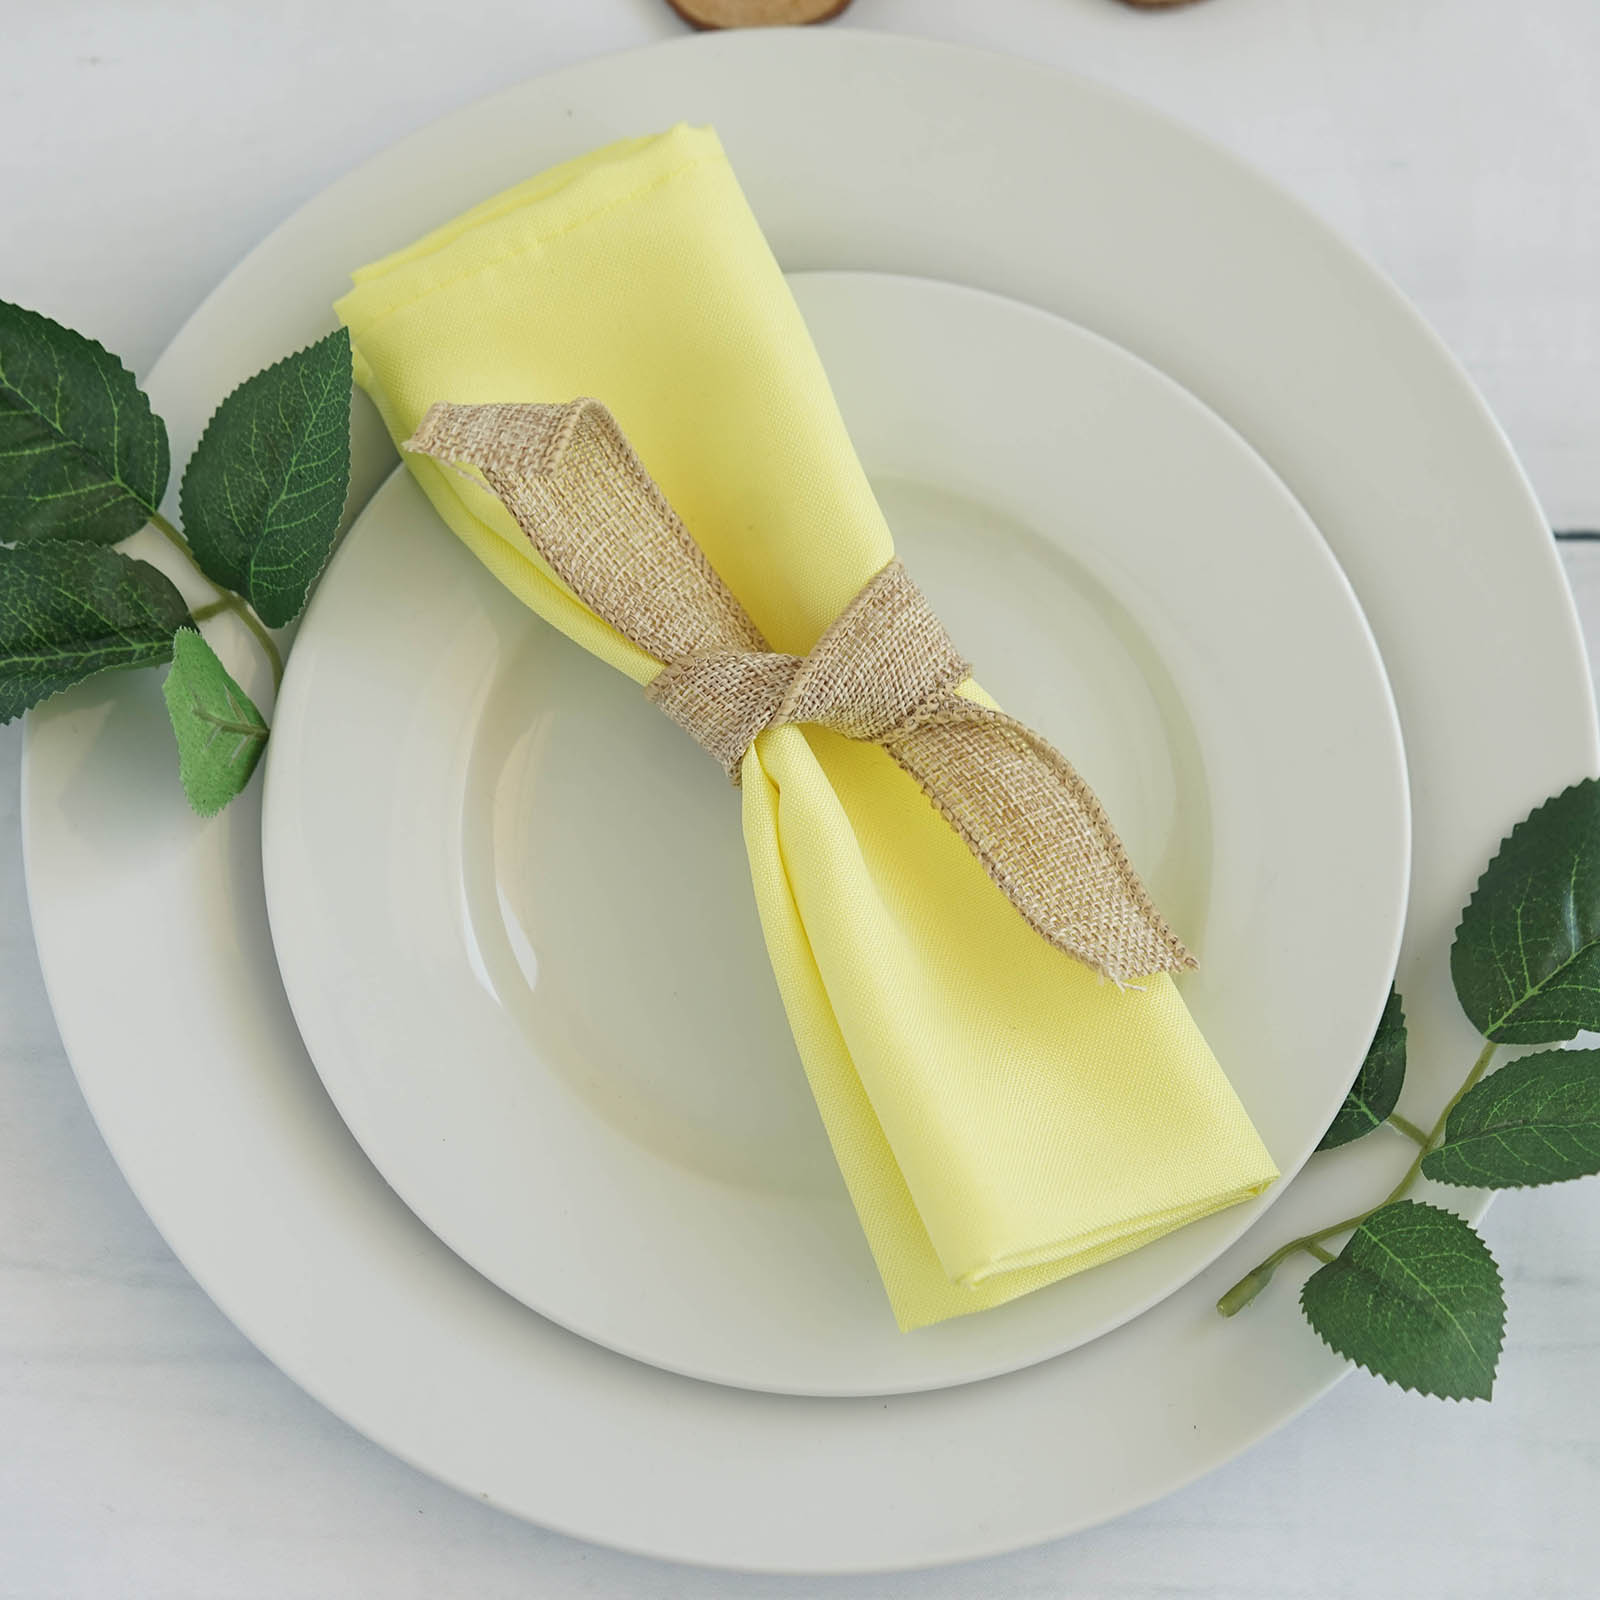 BalsaCircle 5 pcs 17 inch Polyester Fabric Napkins - Wedding Party Events Restaurant Dinner Kitchen Home Decorations